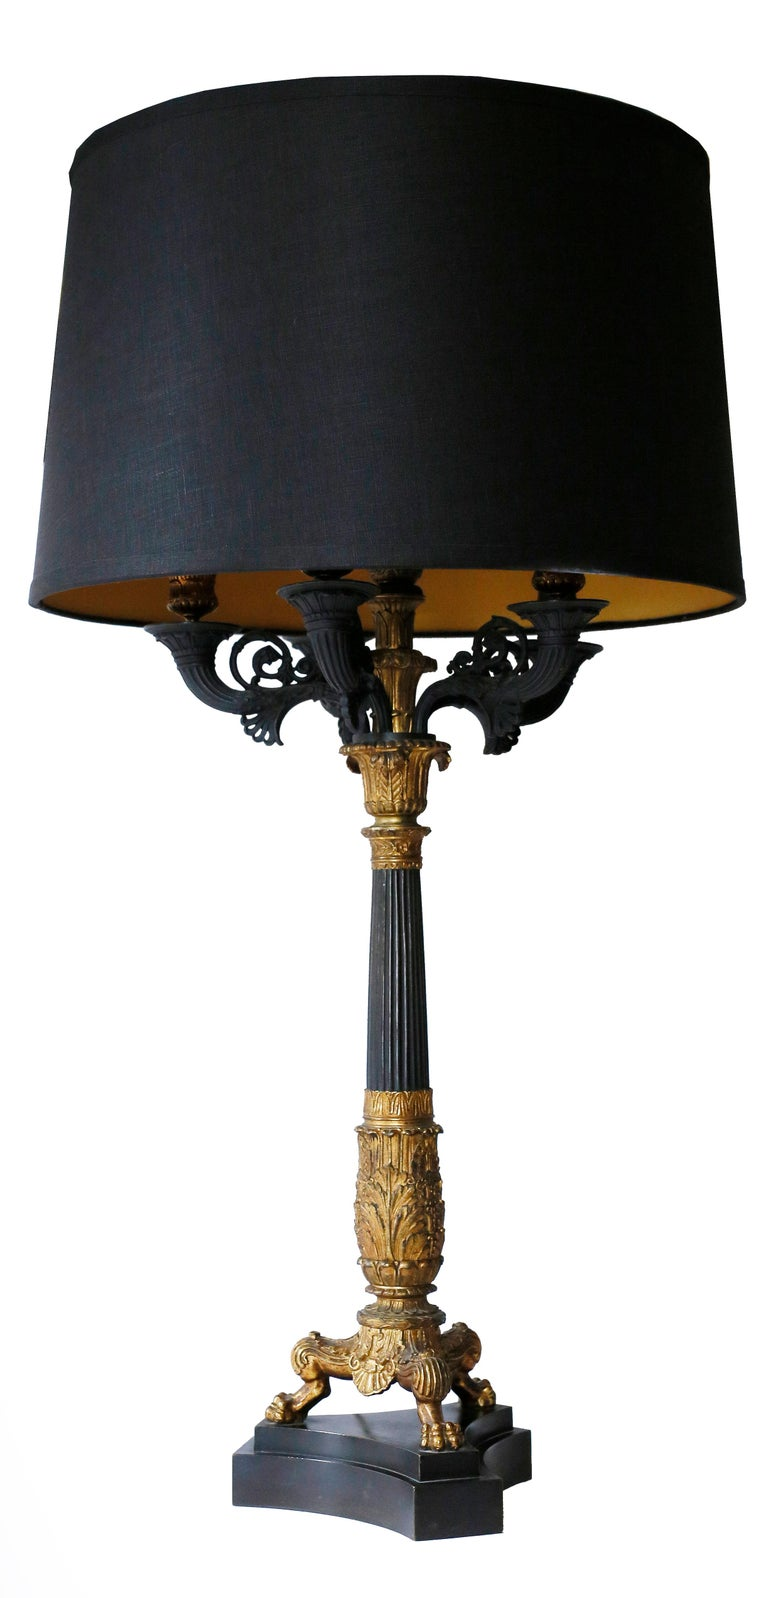 A fine pair of baluster neoclassical lamps of patinated bronze with gold detailing. A black basalt stone base supports a paw-footed tripod with a baluster detailed with fluting and acanthus. The five light candle supports exhibit scrolls and bronze